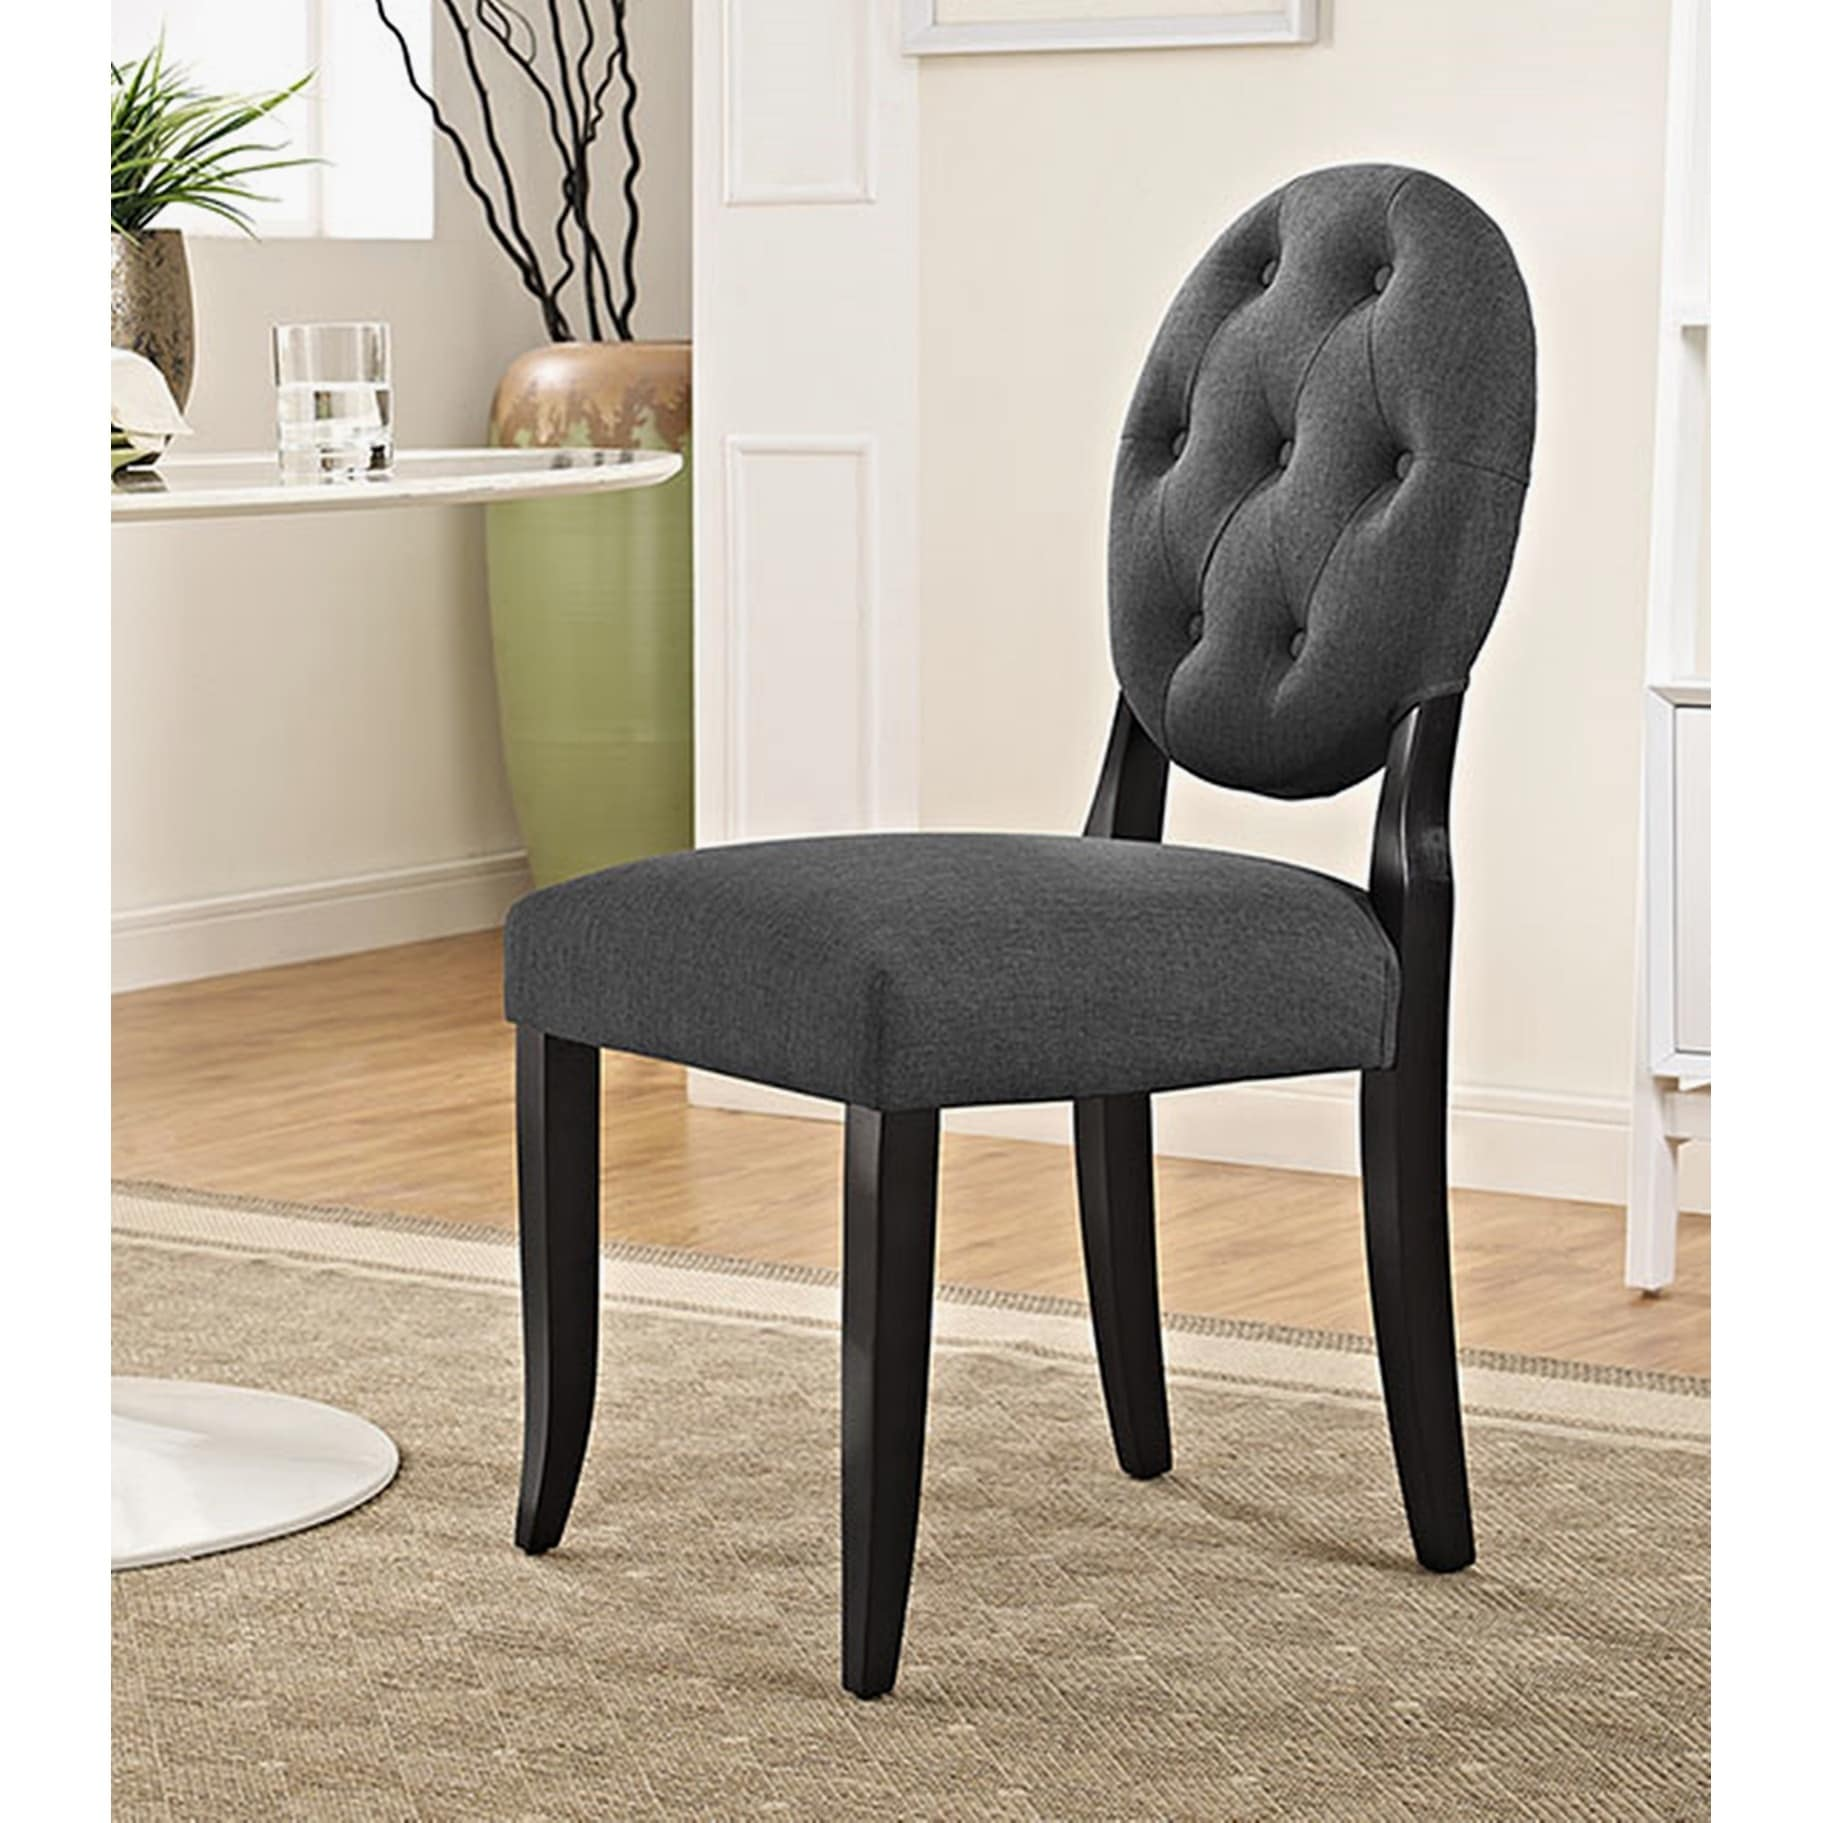 gray upholstered dining chairs wedding chair covers hire horizon round grey ebay details about